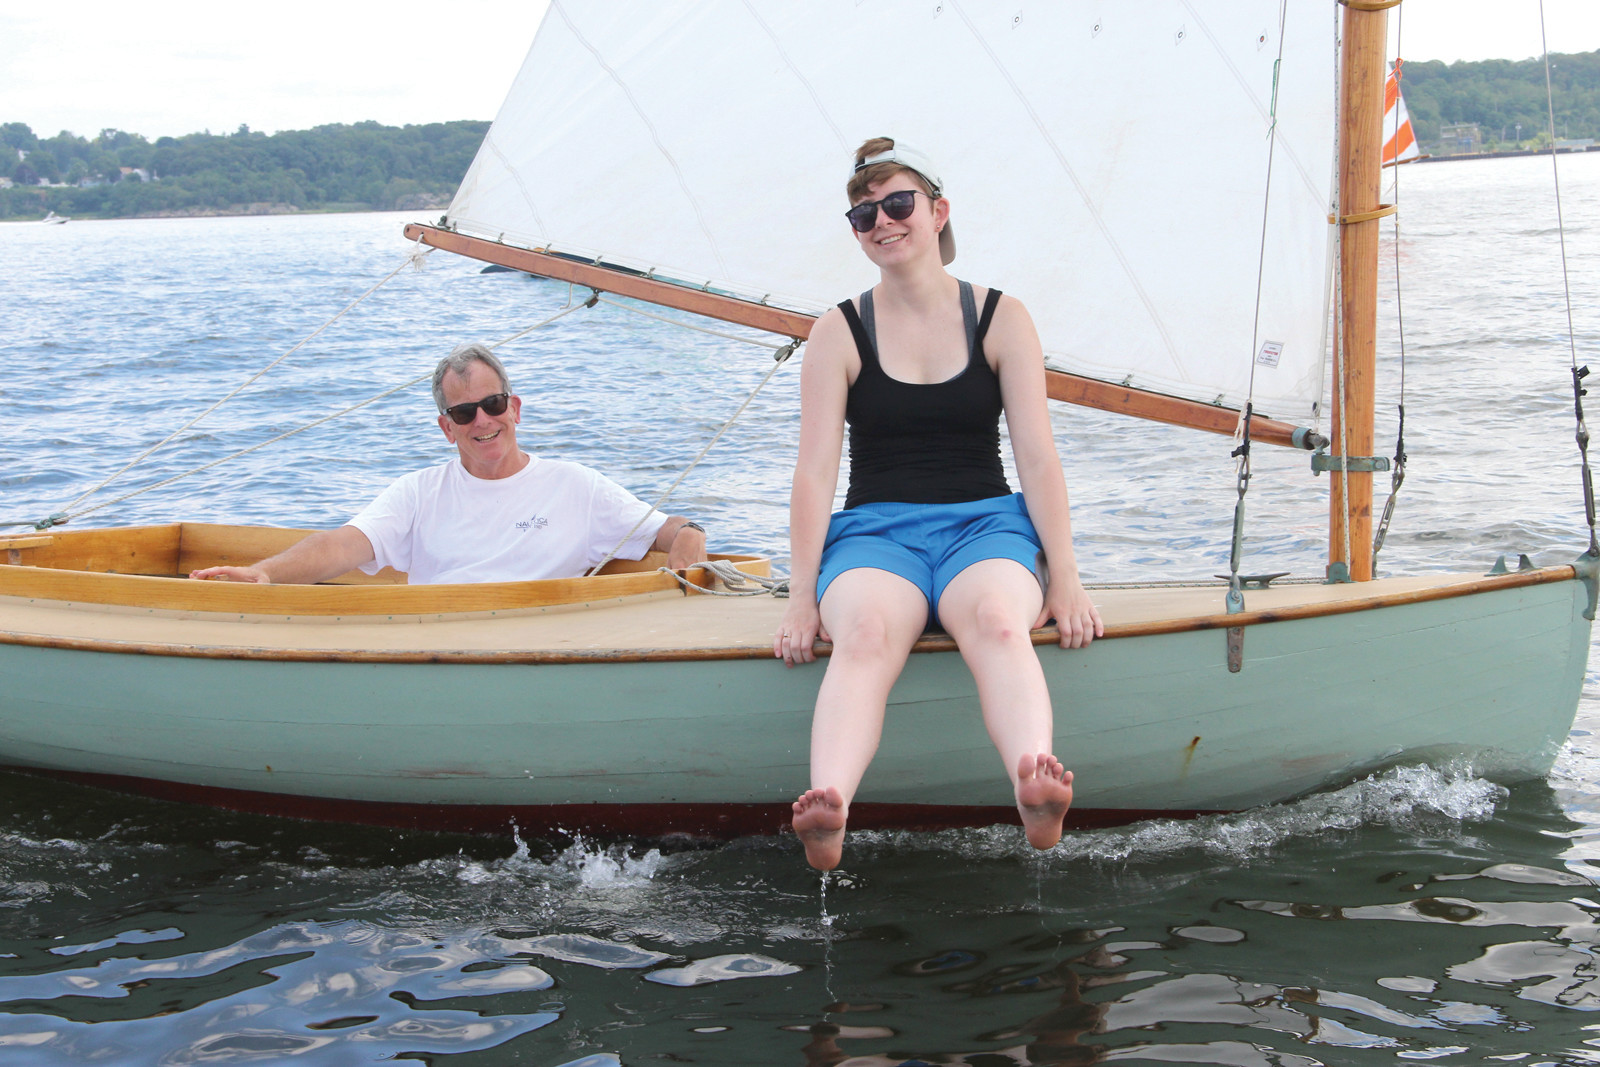 KEEPING COOL: Hope Lanphear, who was the skipper of Nuisance, cools her feet as her father Jeffery Lanphear takes the tiller prior to the start of a race.